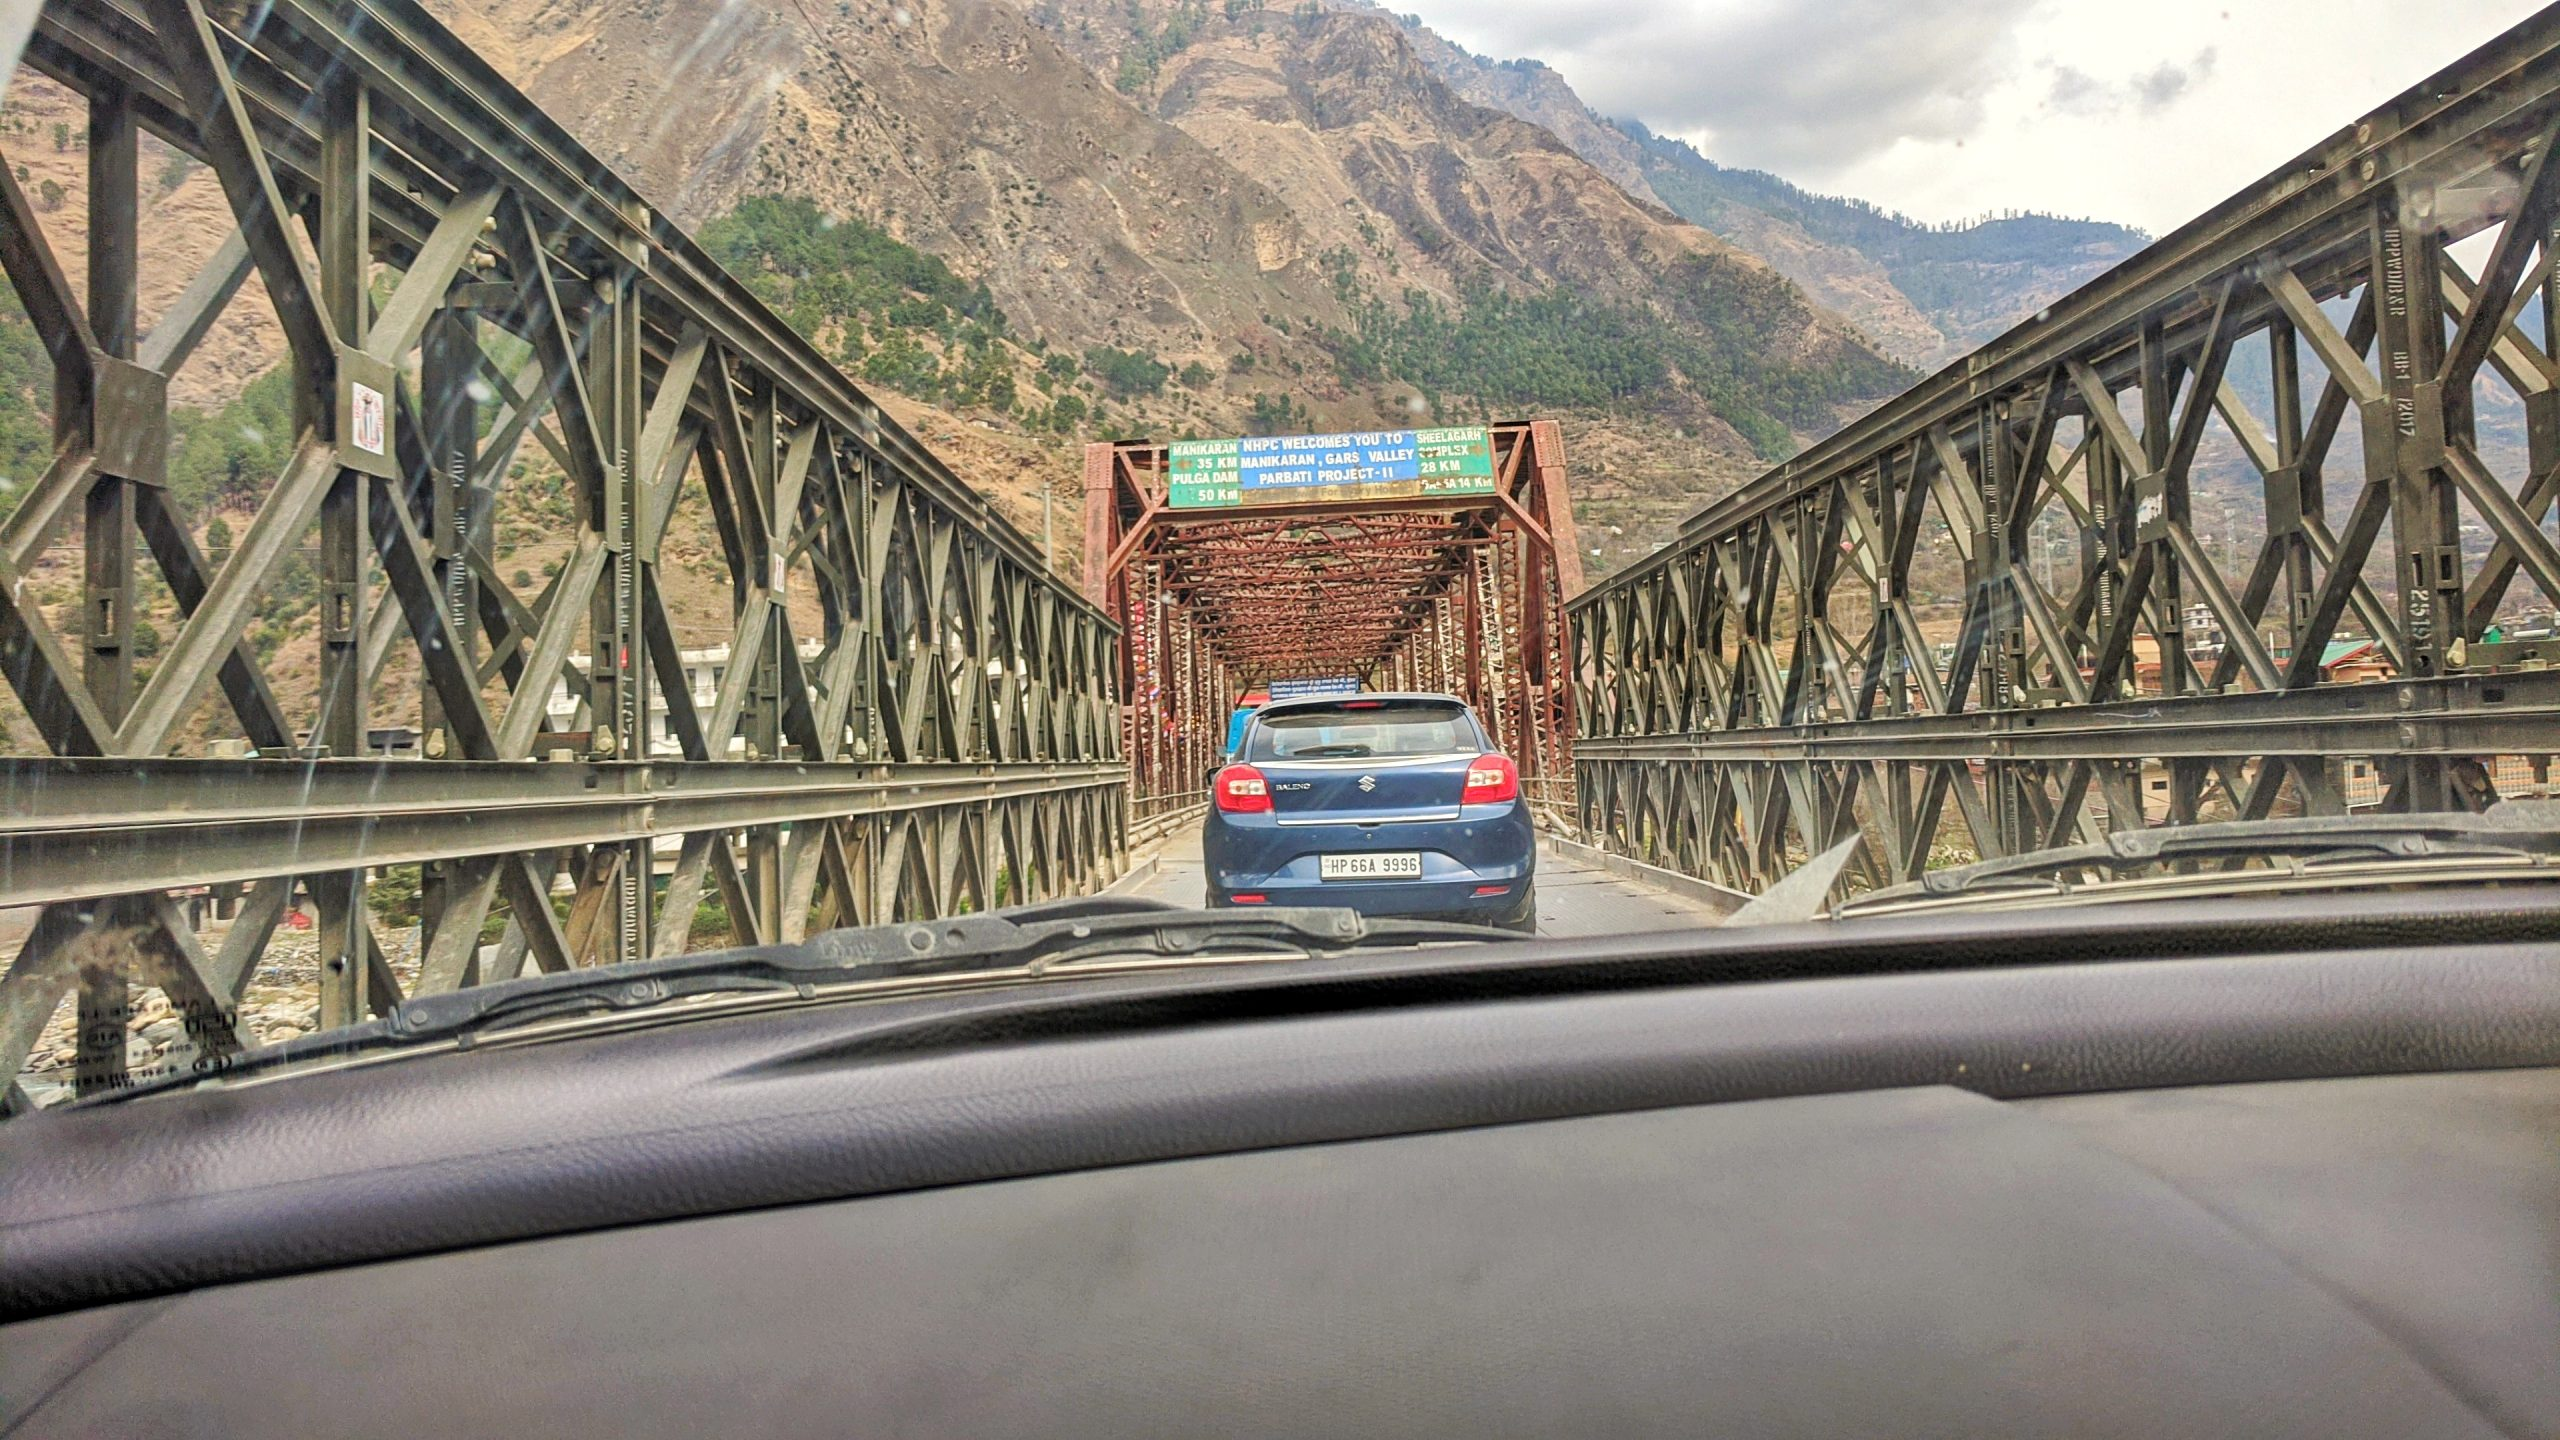 Cars moving on a narrow bridge